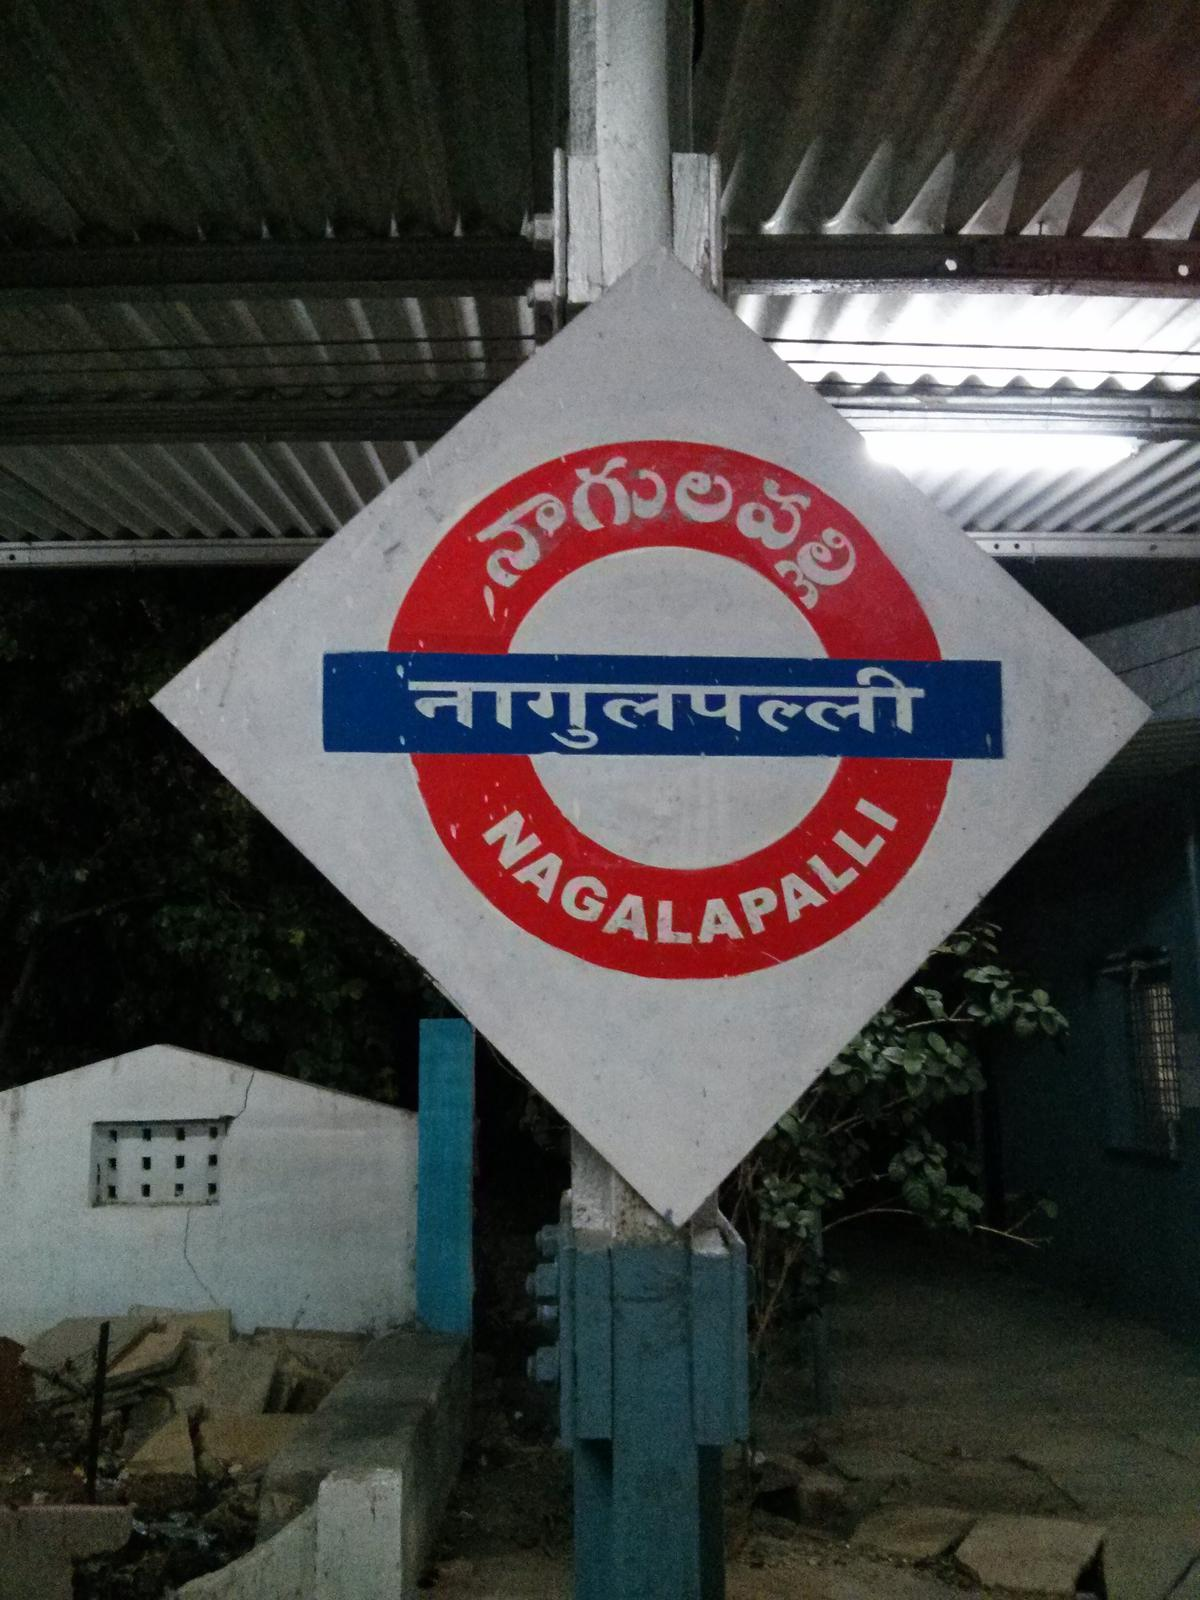 Nagalapalli Railway Station Map/Atlas SCR/South Central Zone